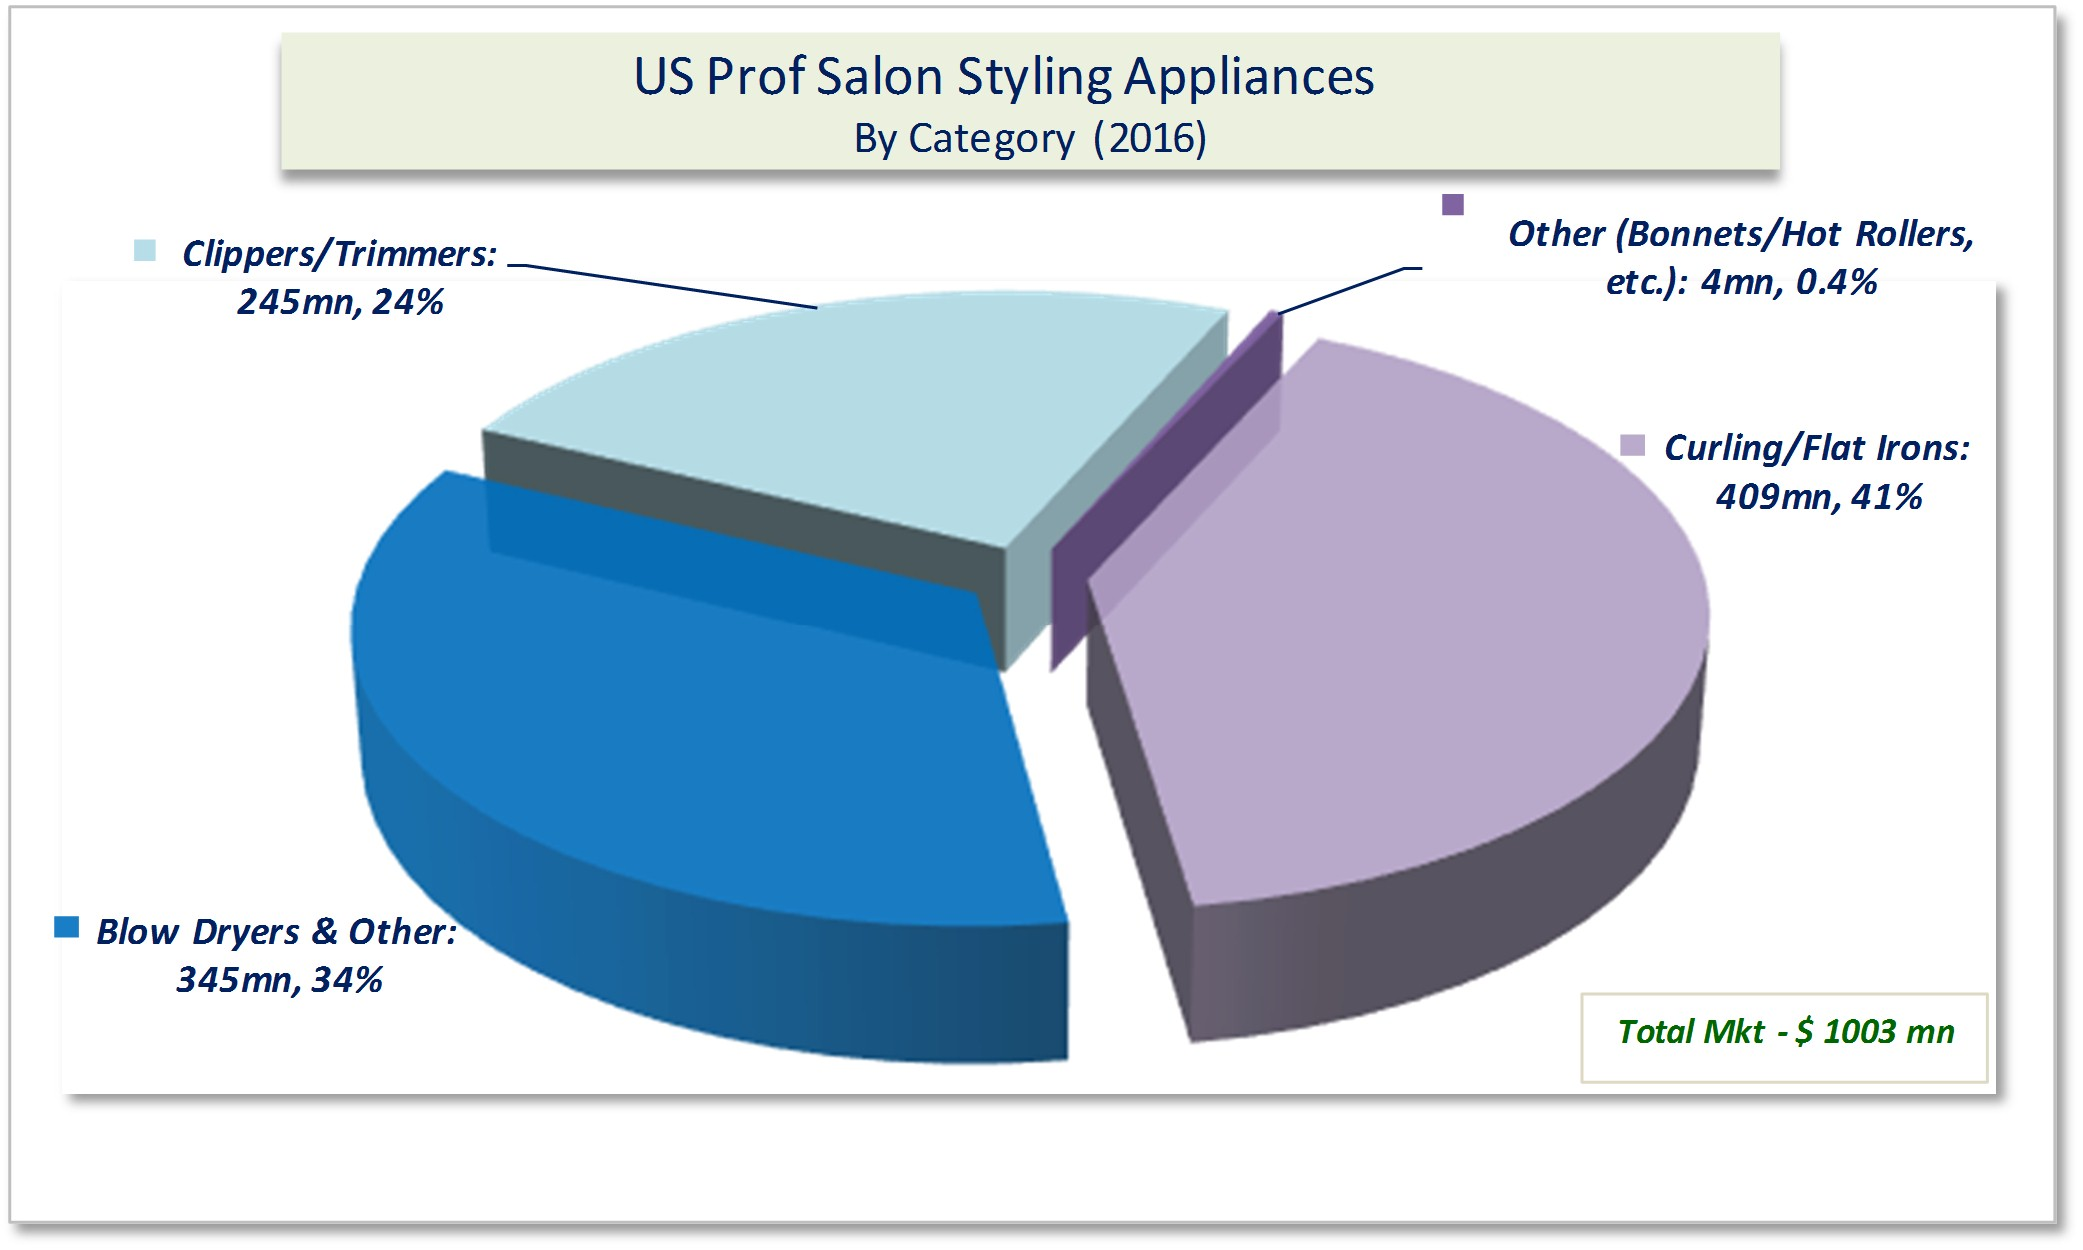 New Study Shows Significant Growth in Sales of Appliances and Shears